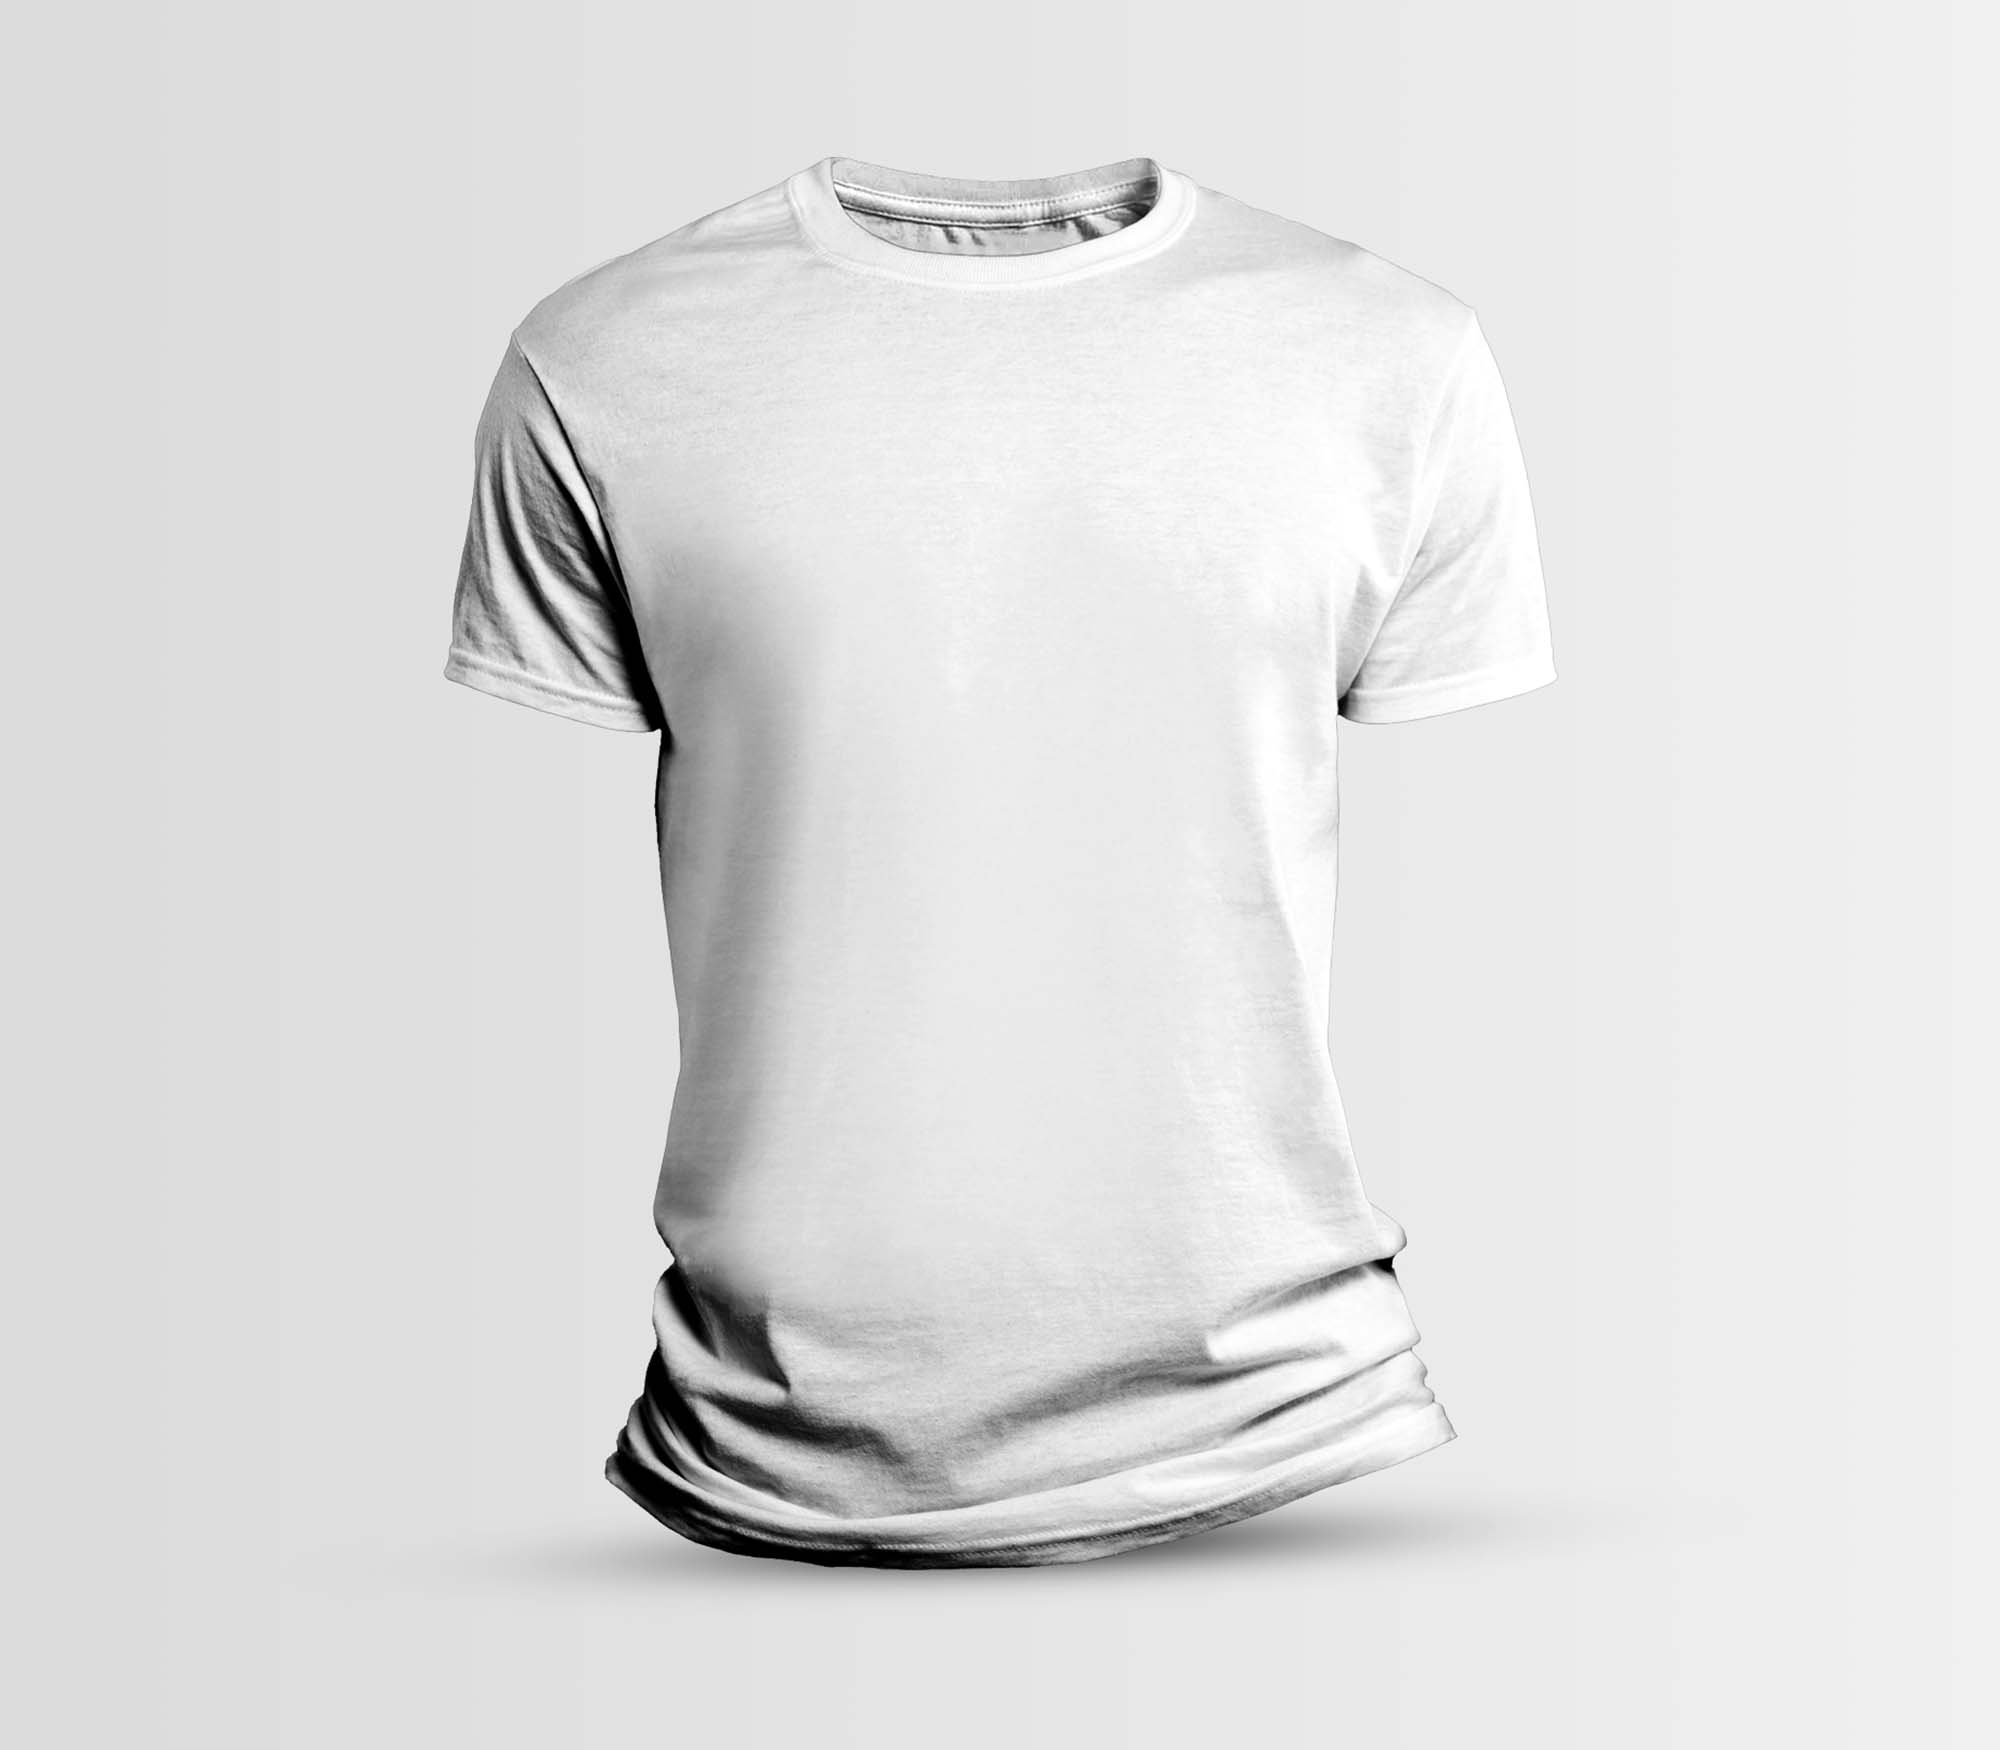 Simple Men T-shirt Mockup 2